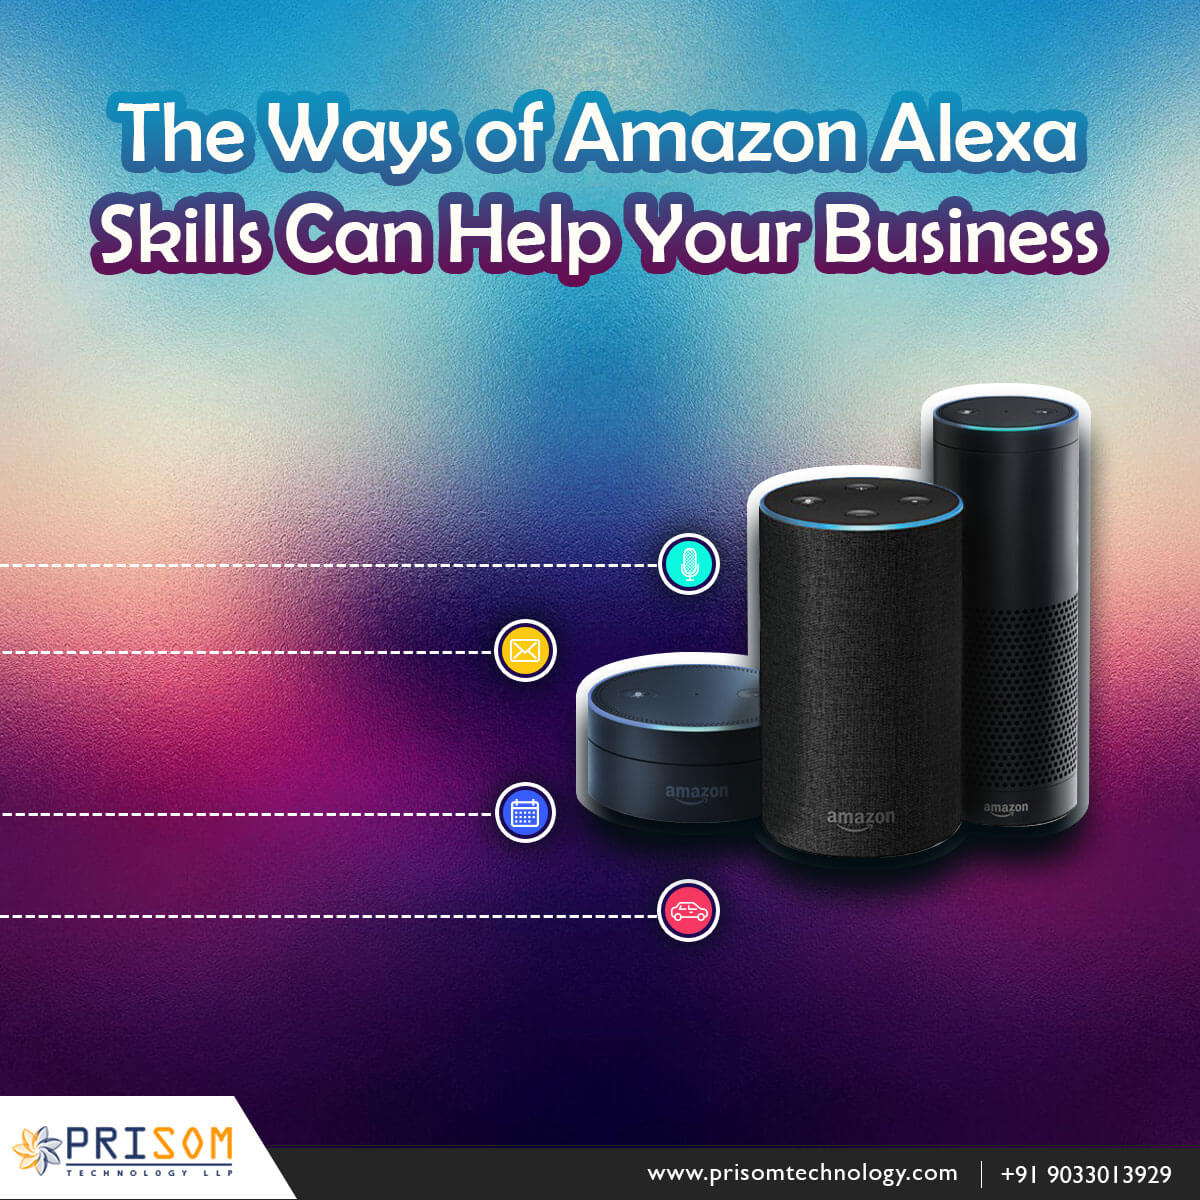 The Ways of Amazon Alexa Skills Can Help Your Business